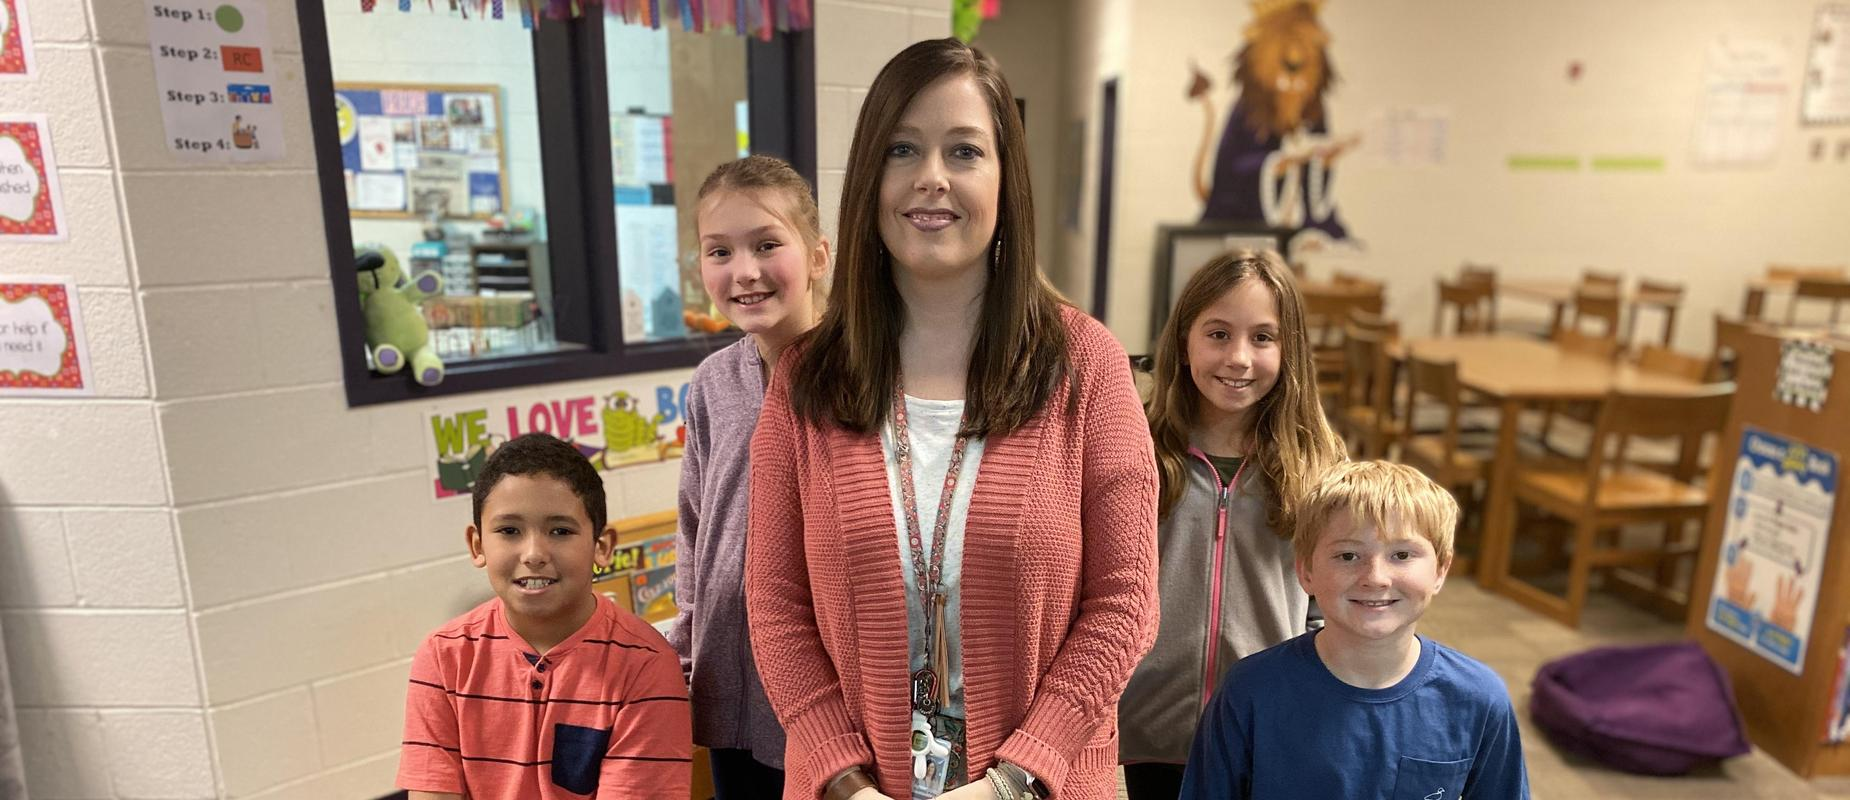 Sabrina Price Named Media Specialist of the Year!